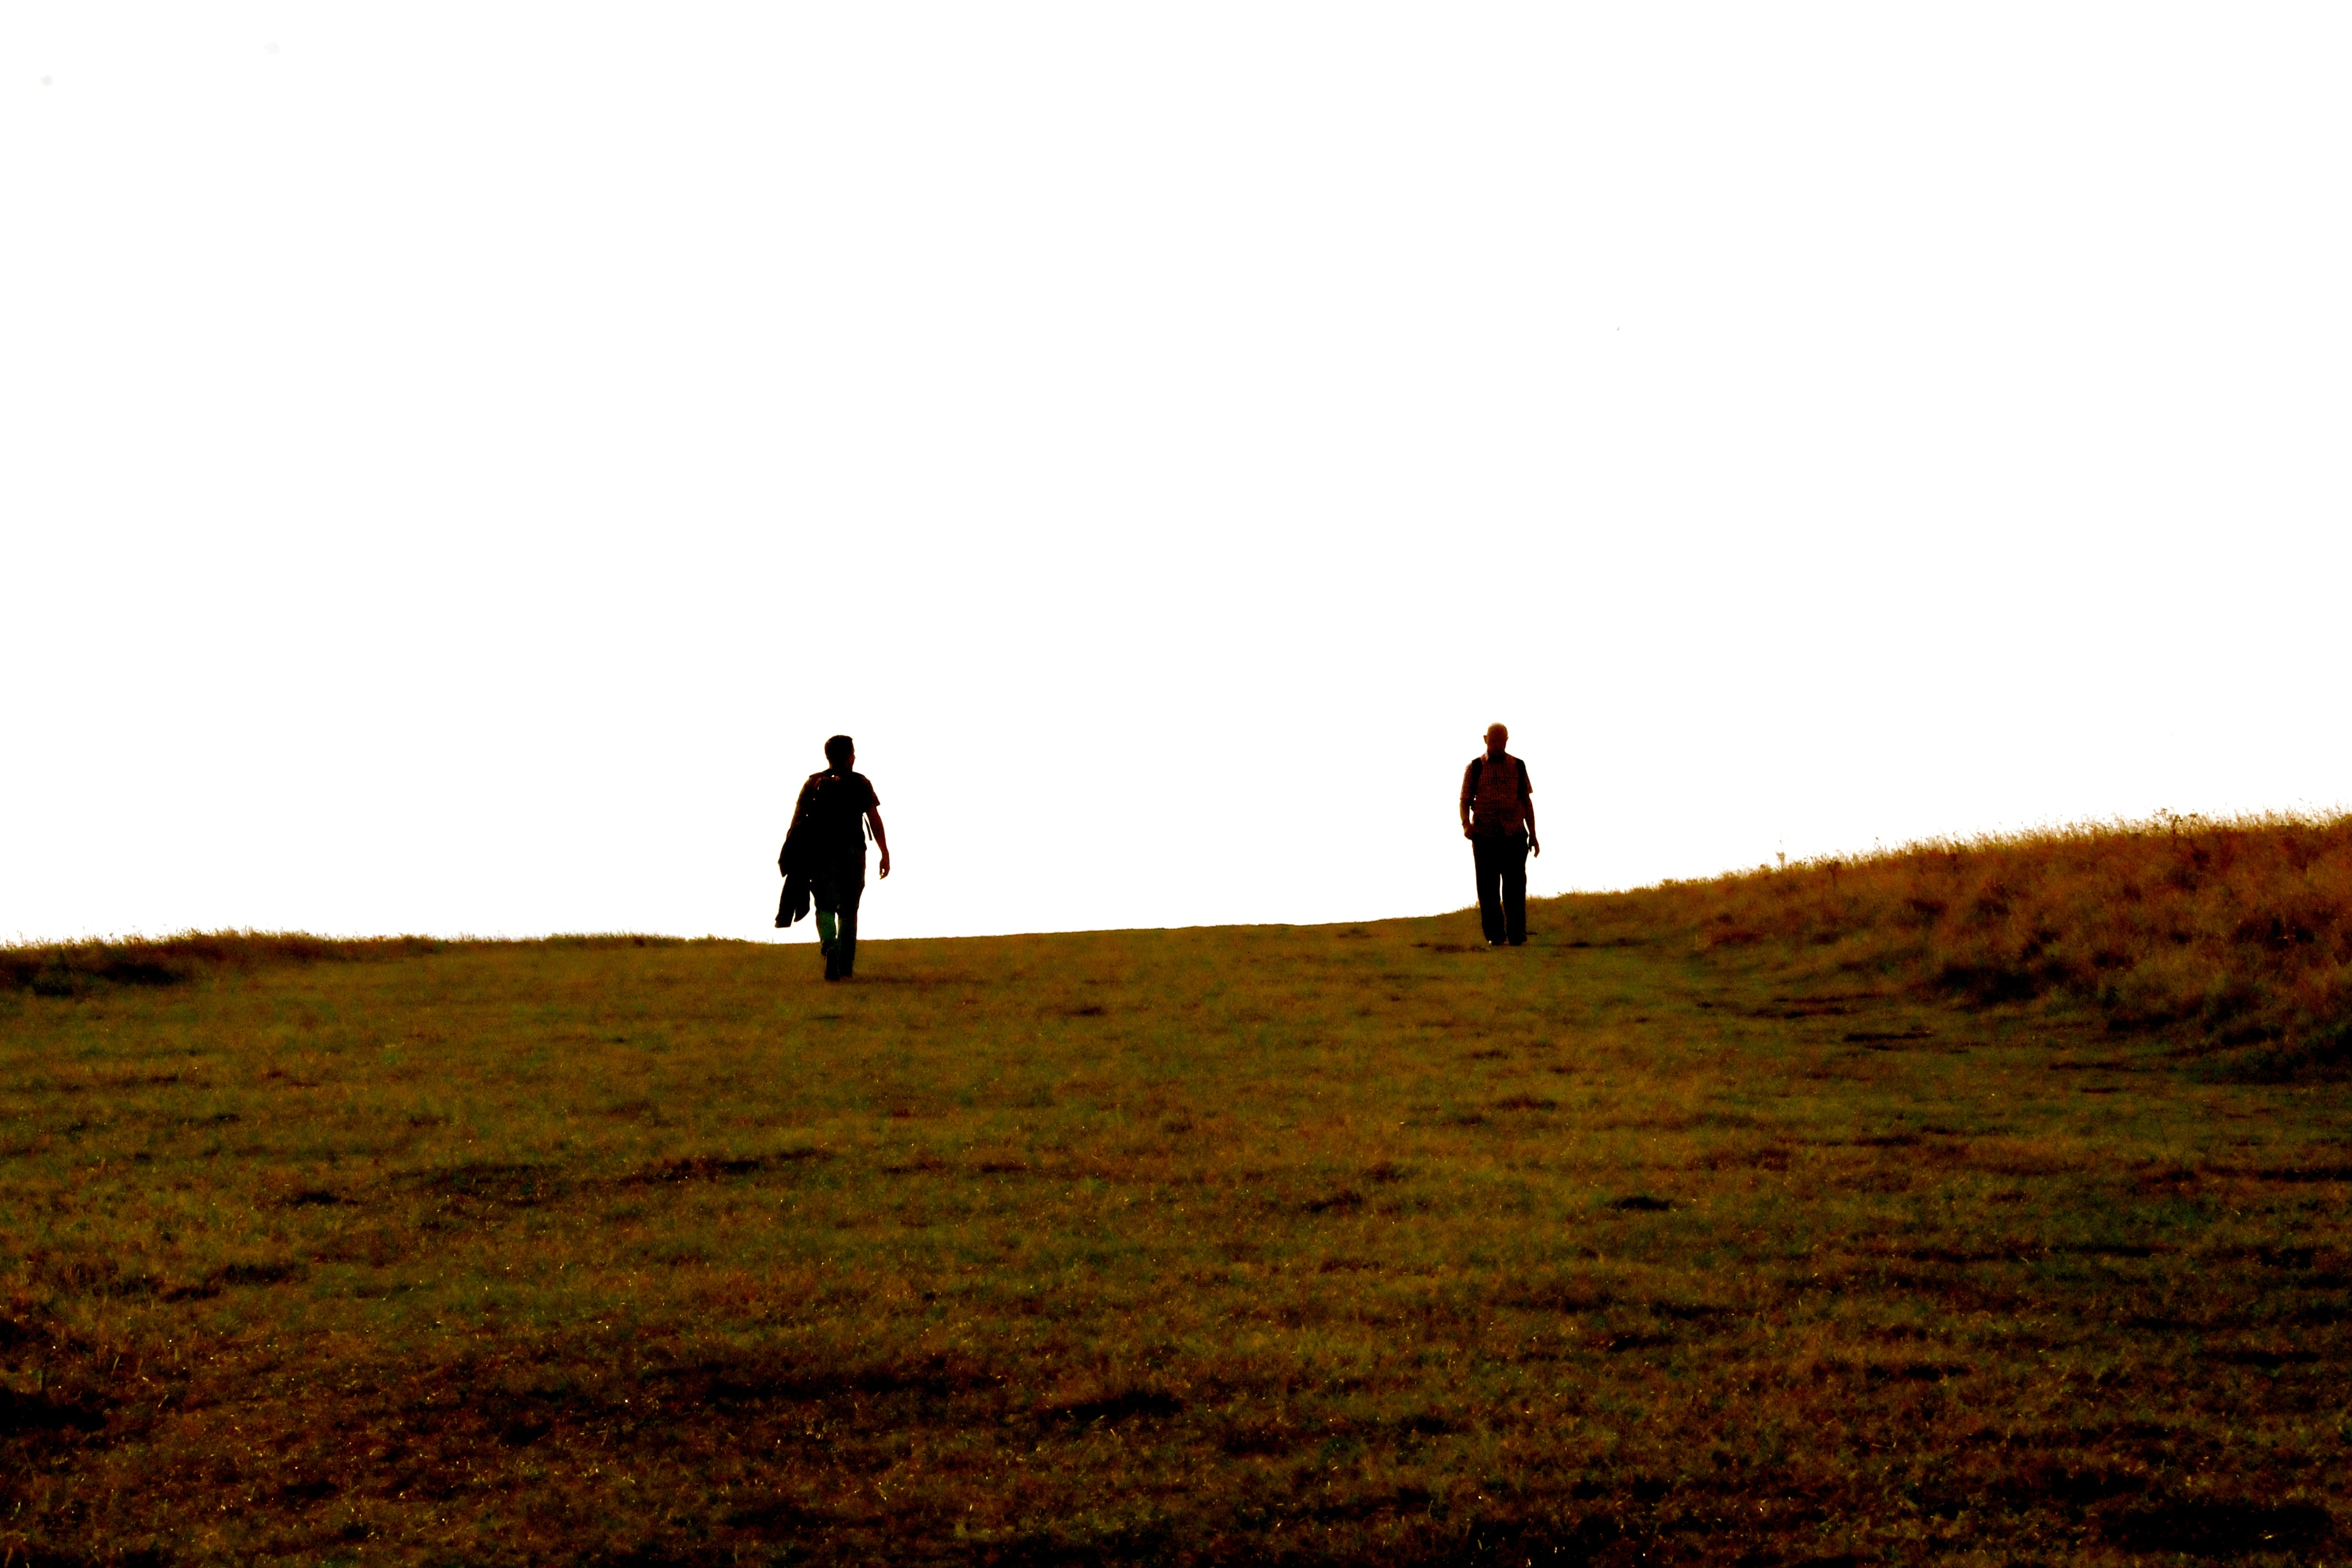 Two people walking down a gentle hill filled with grass under a clear white sky